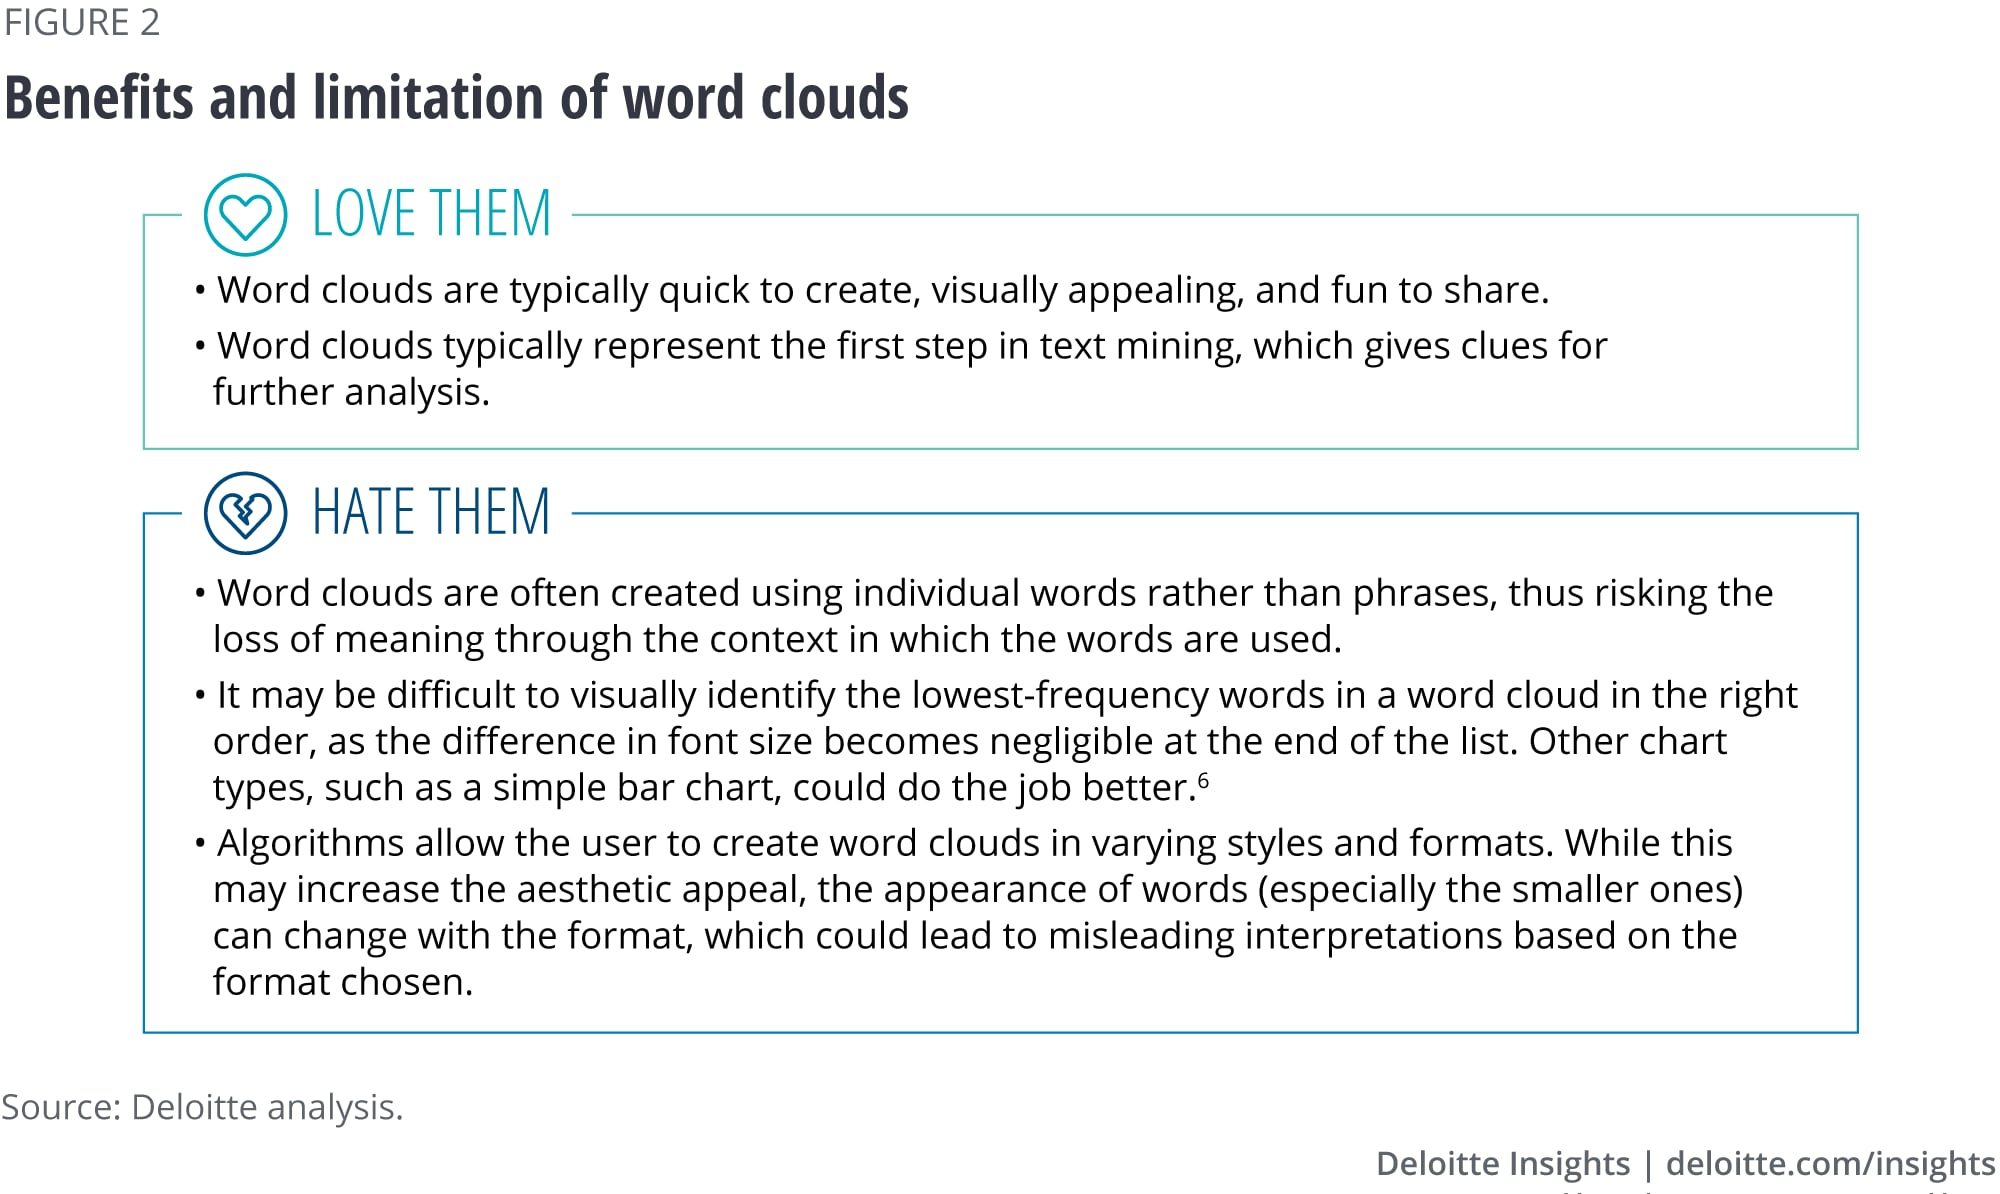 Benefits and limitation of word clouds